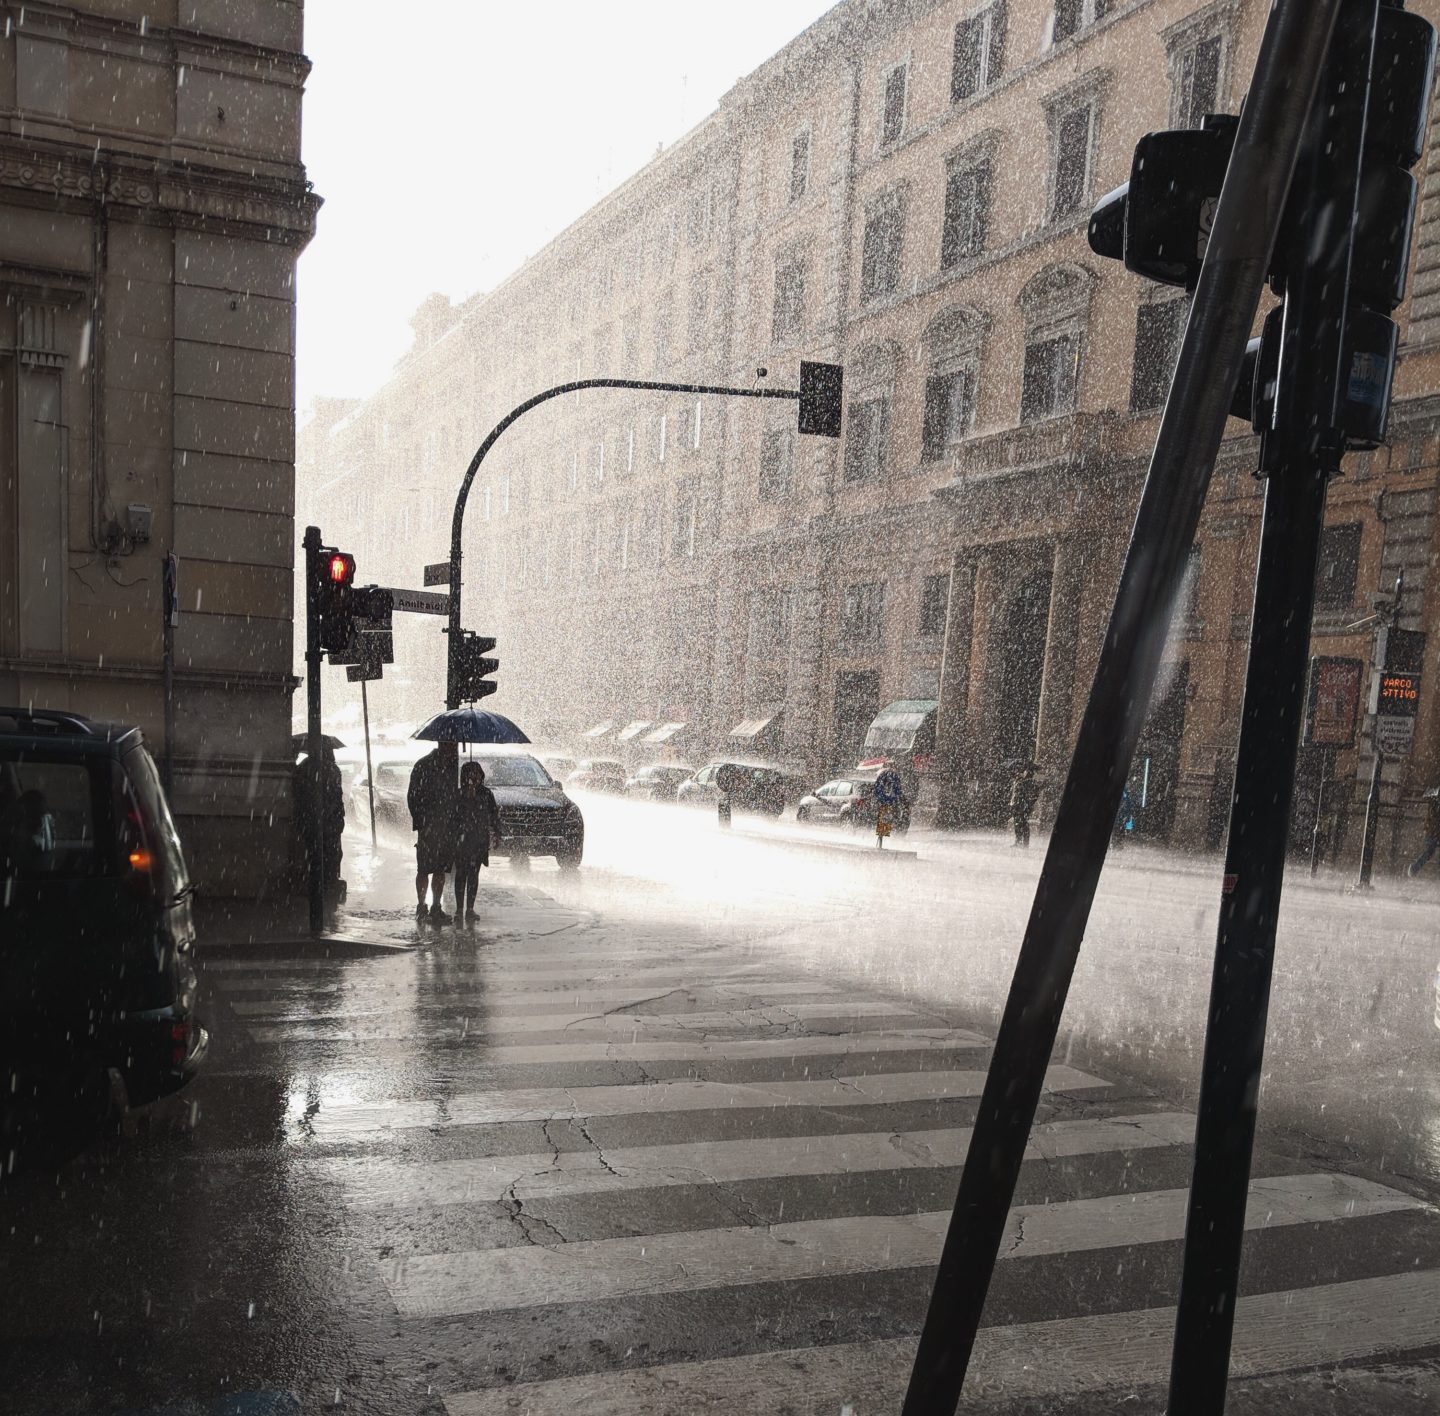 heavy rain in rome street